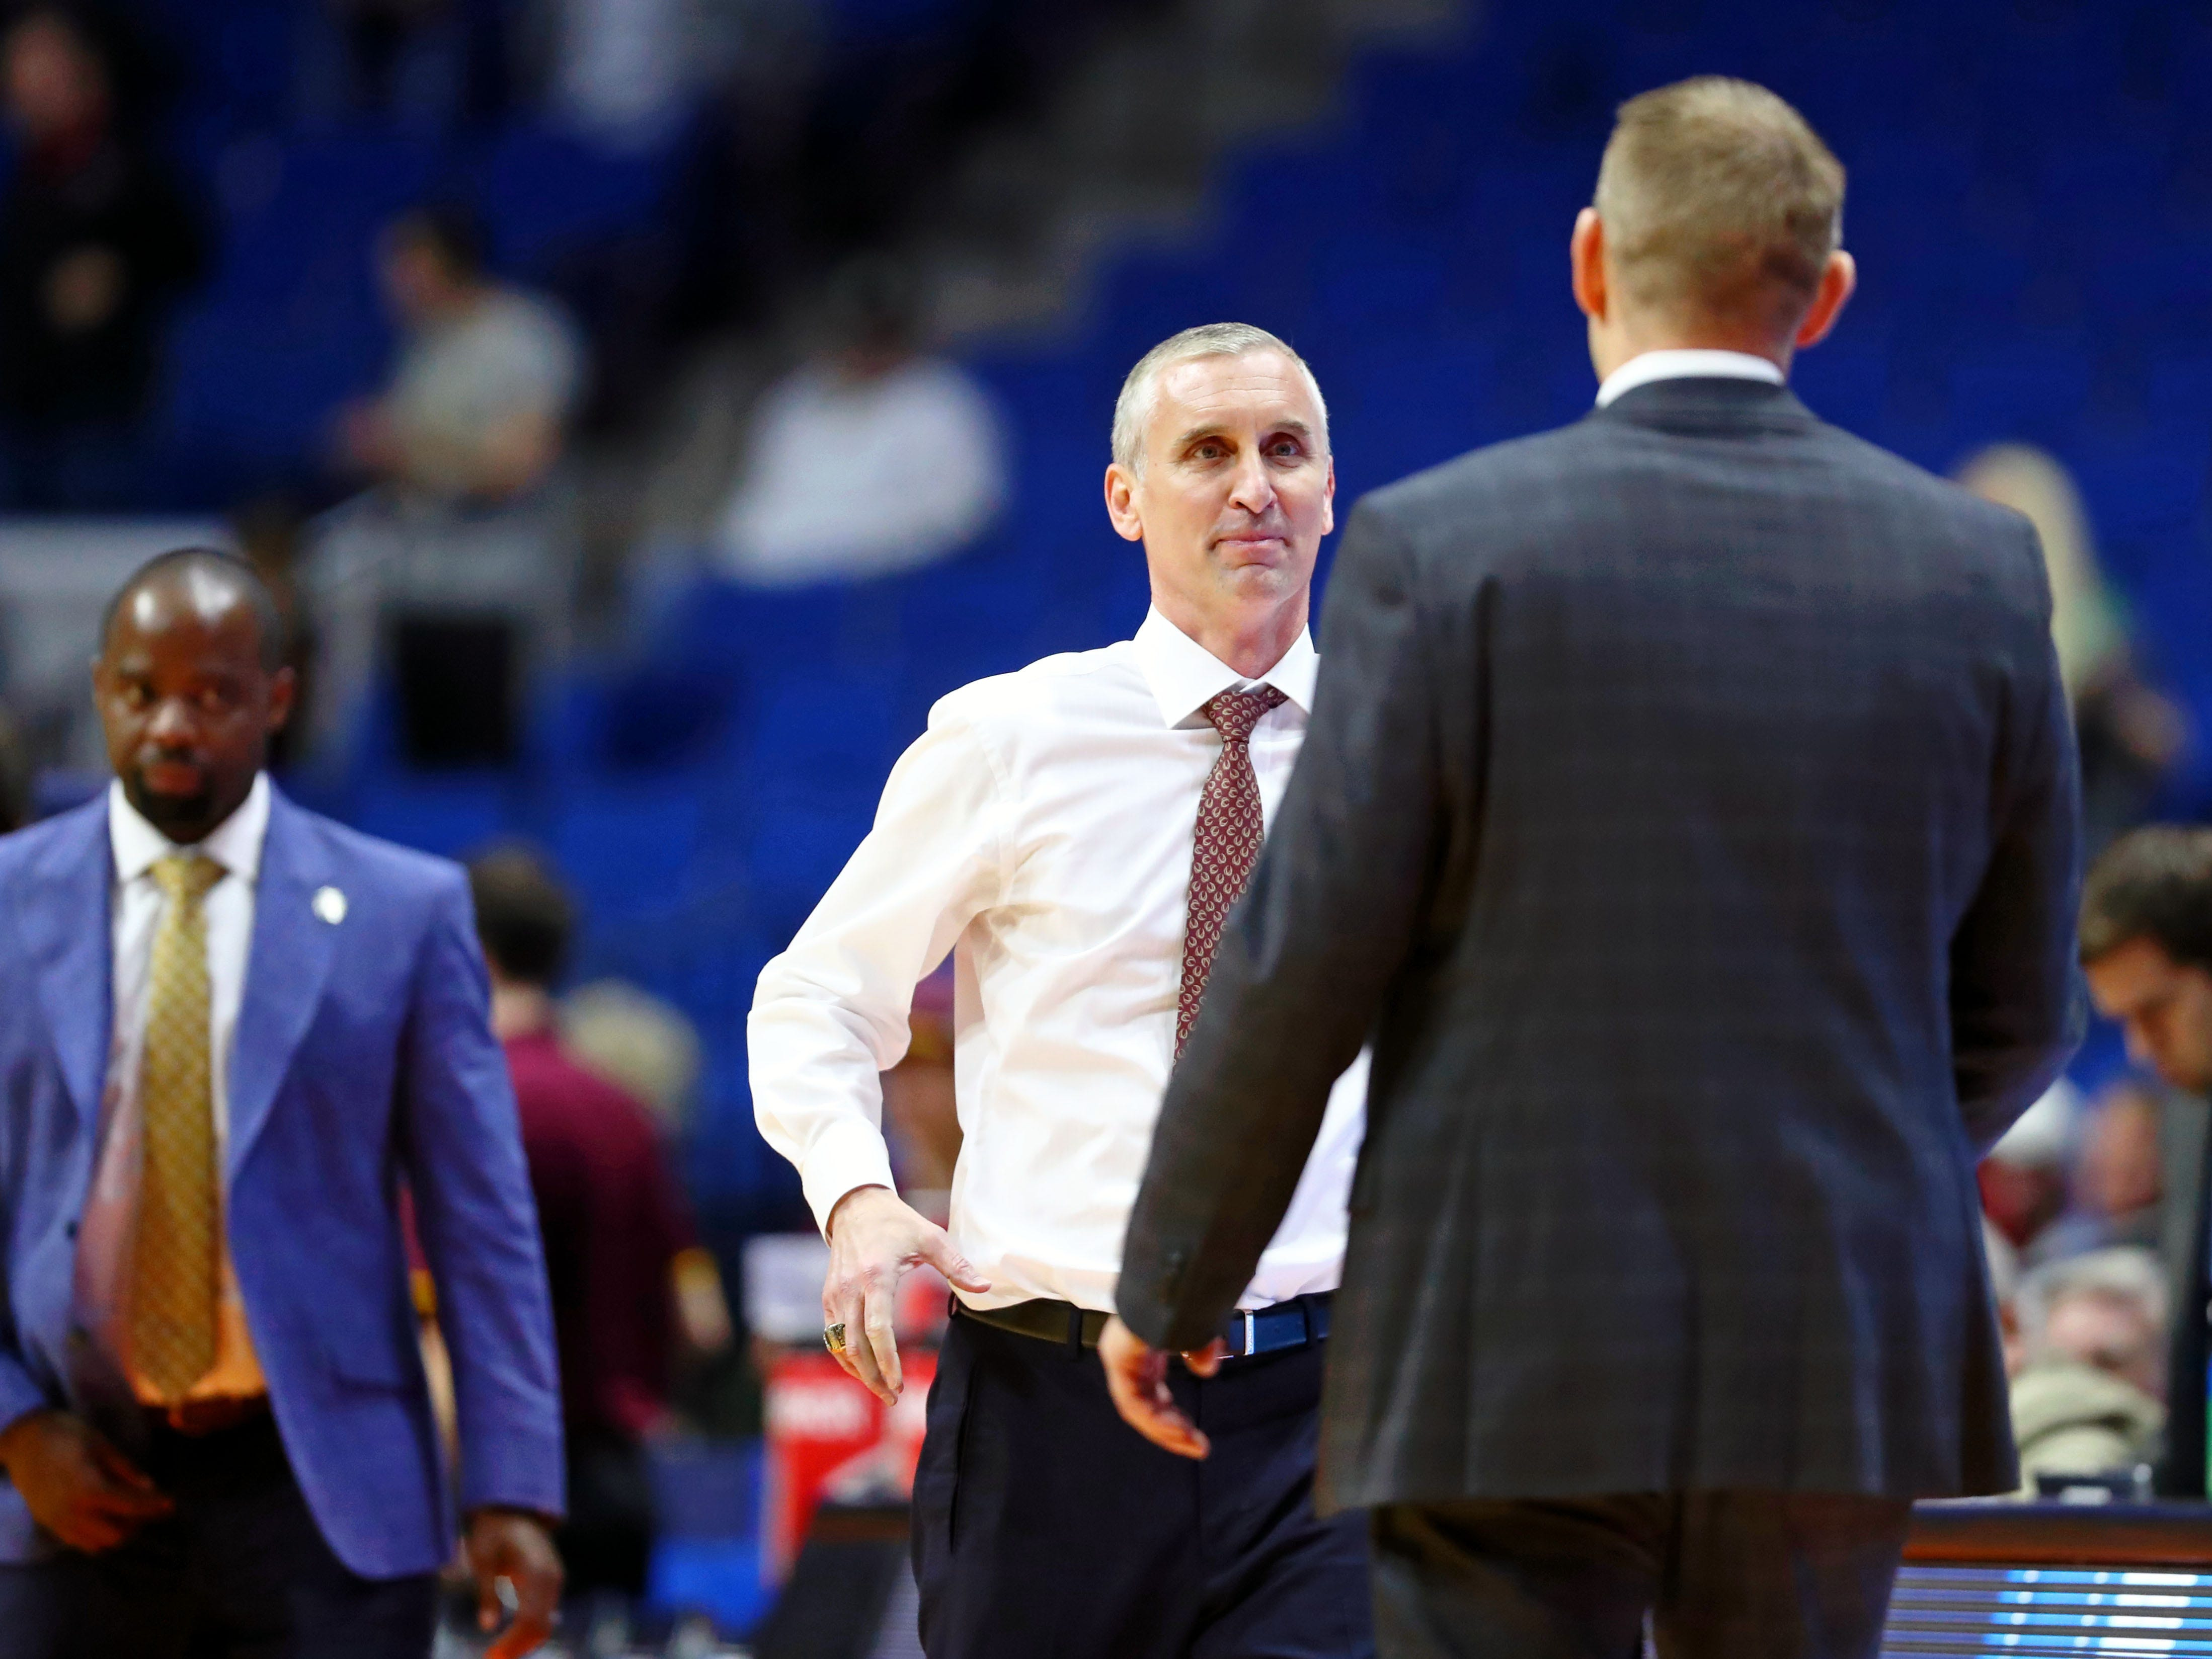 Mar 22, 2019; Tulsa, OK, USA; Arizona State Sun Devils head coach Bobby Hurley shakes hands with Buffalo Bulls head coach Nate Oats after their game in the first round of the 2019 NCAA Tournament at BOK Center. The Buffalo Bulls won 91-74. Mandatory Credit: Mark J. Rebilas-USA TODAY Sports